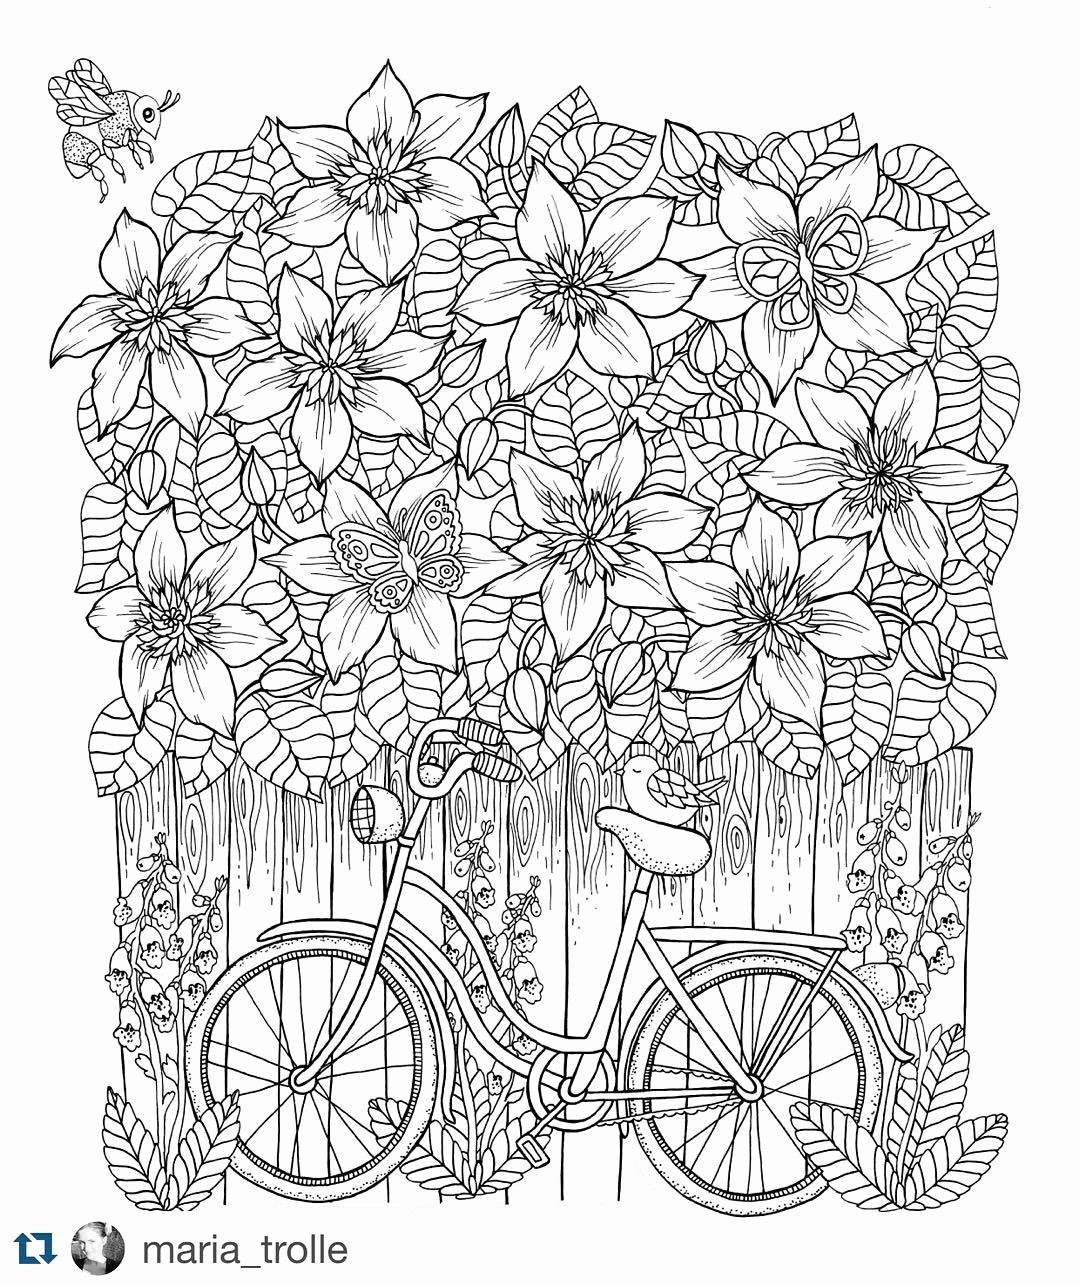 Free Adult Coloring Pages Free Adult Coloring Inspirational Photos Free Download Coloring